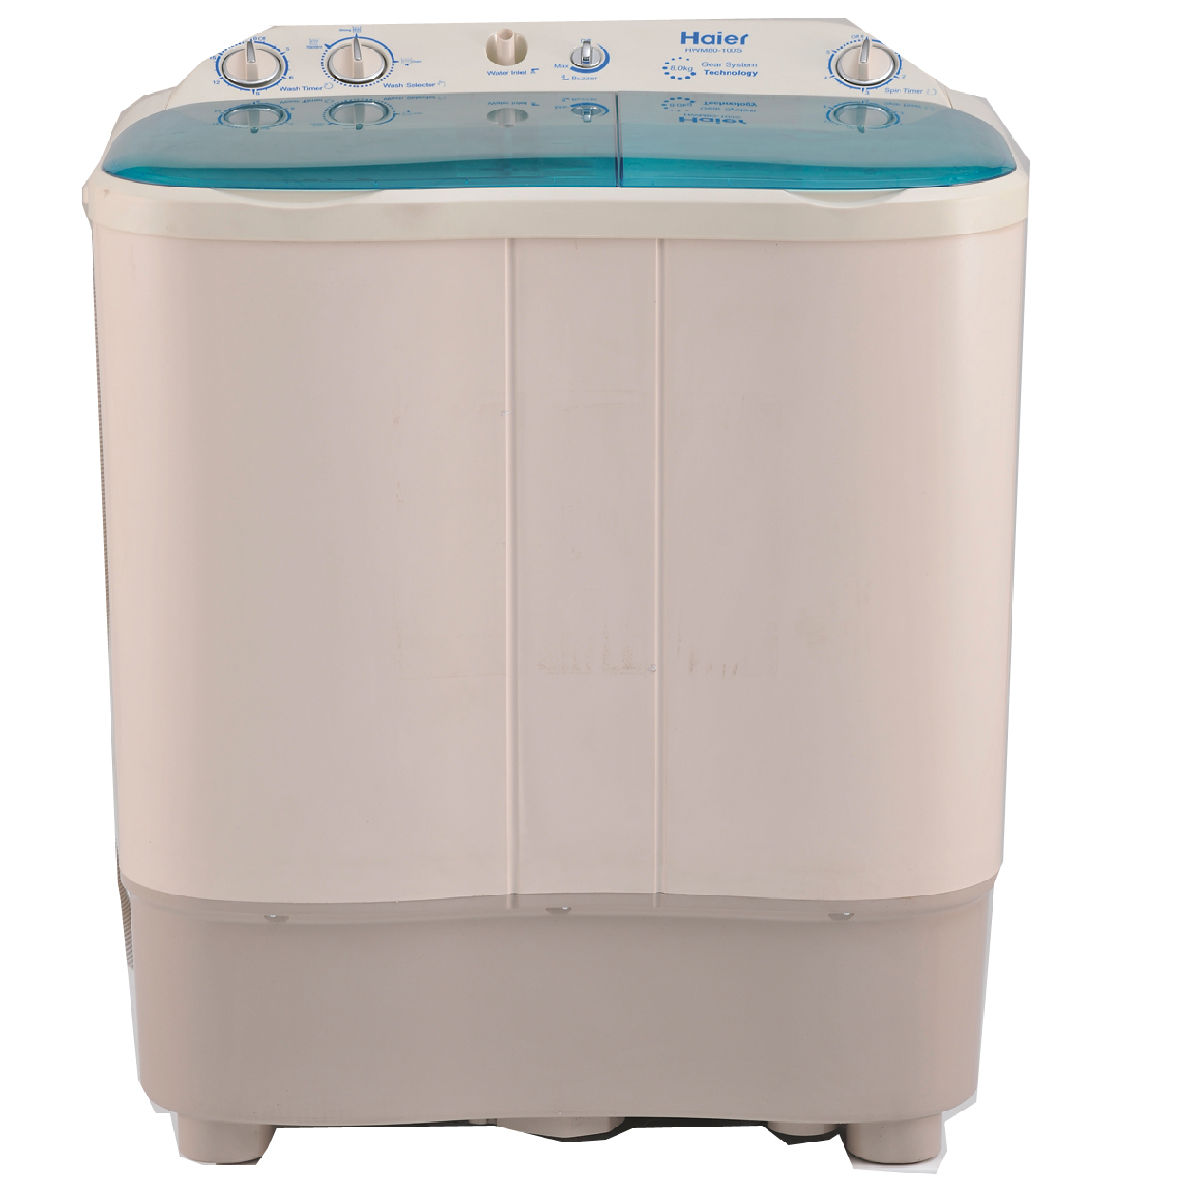 haier washing machine haier washing machine hwm80 100s in pakistan homeshopping 12985